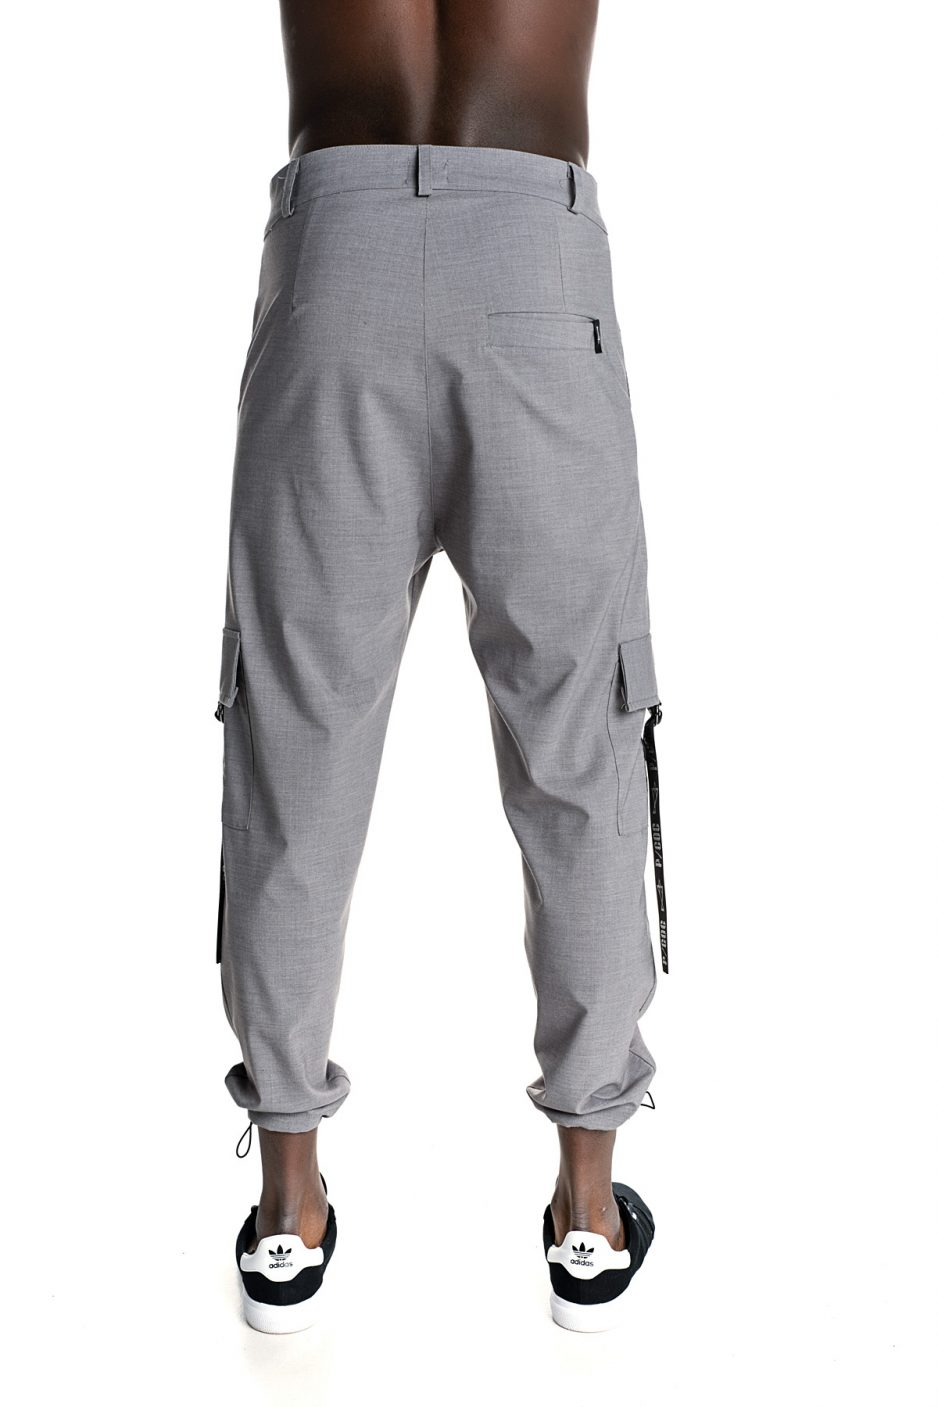 Grey P/COC cool trousers with pockets